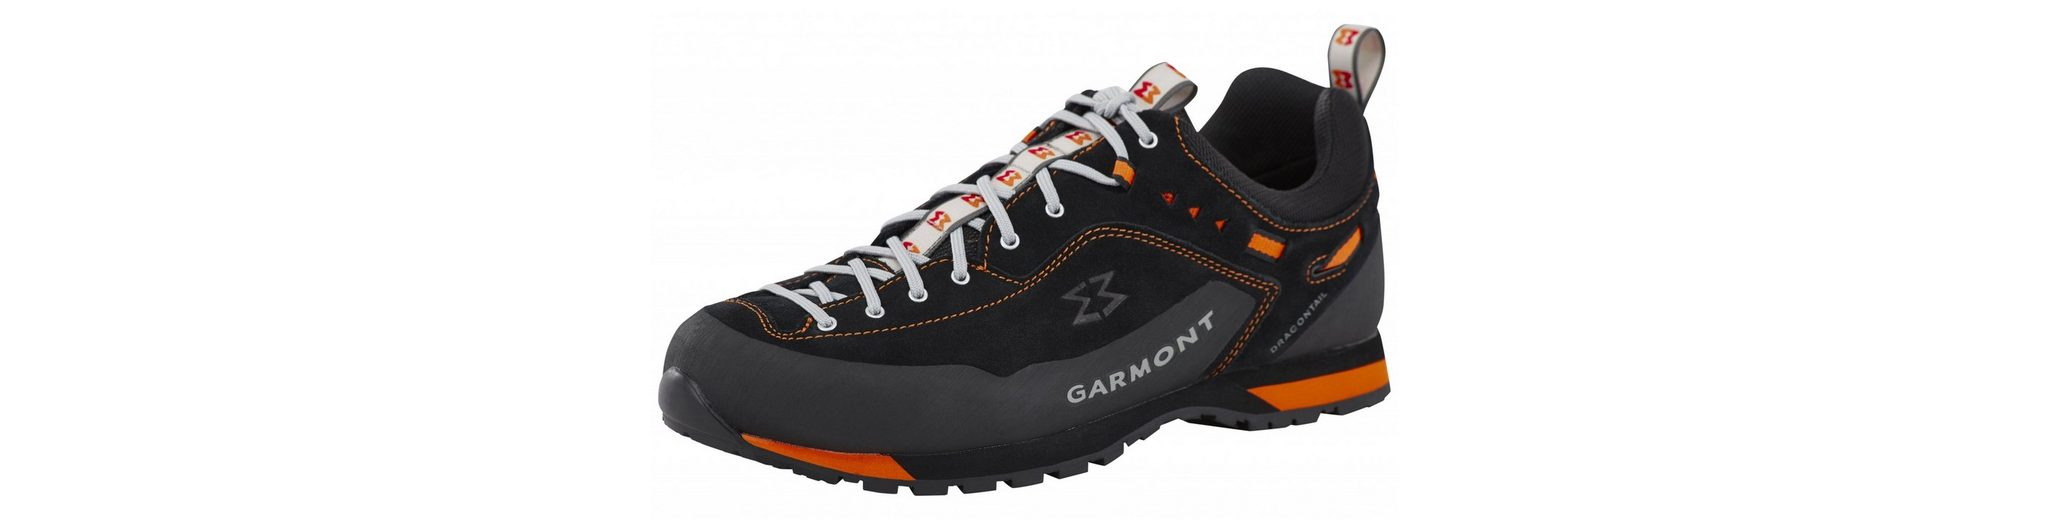 Garmont Kletterschuh Dragontail LT Shoes Men Wie Viel Günstig Online Pid4PyBTa